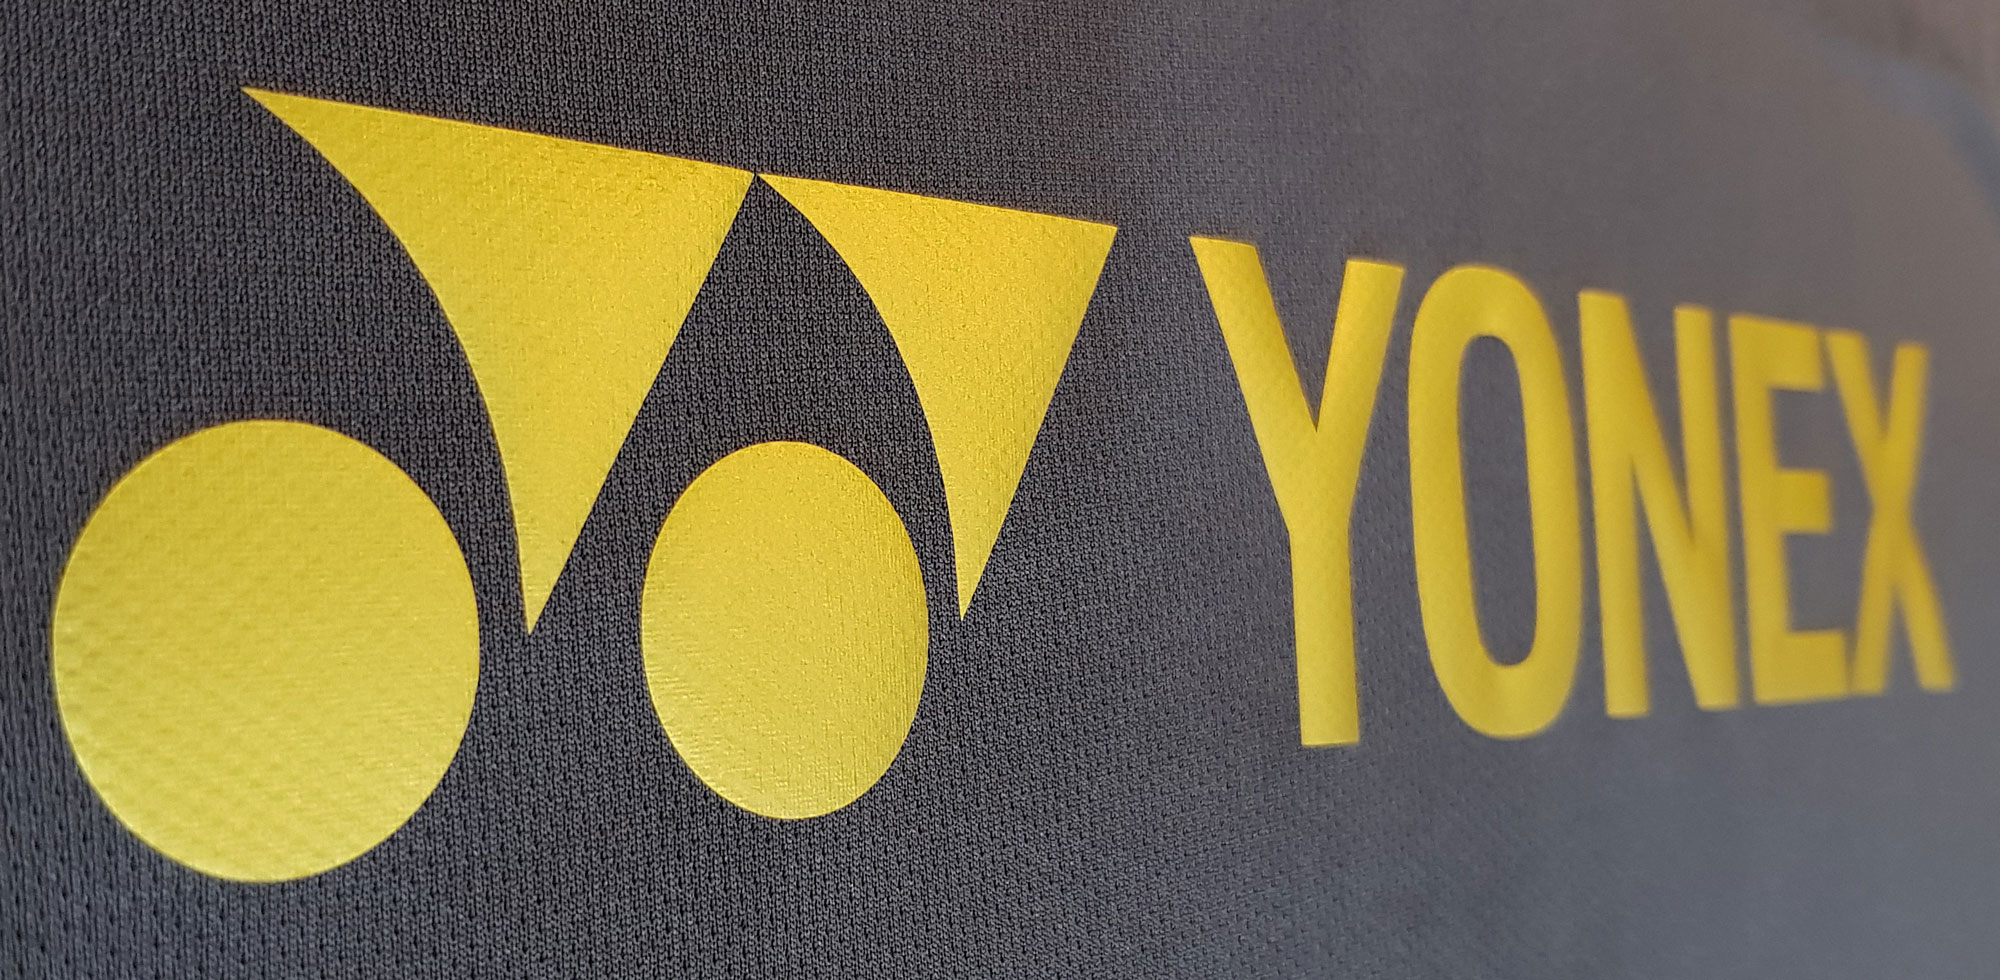 Yonex shirt - Yonex Gold close look front